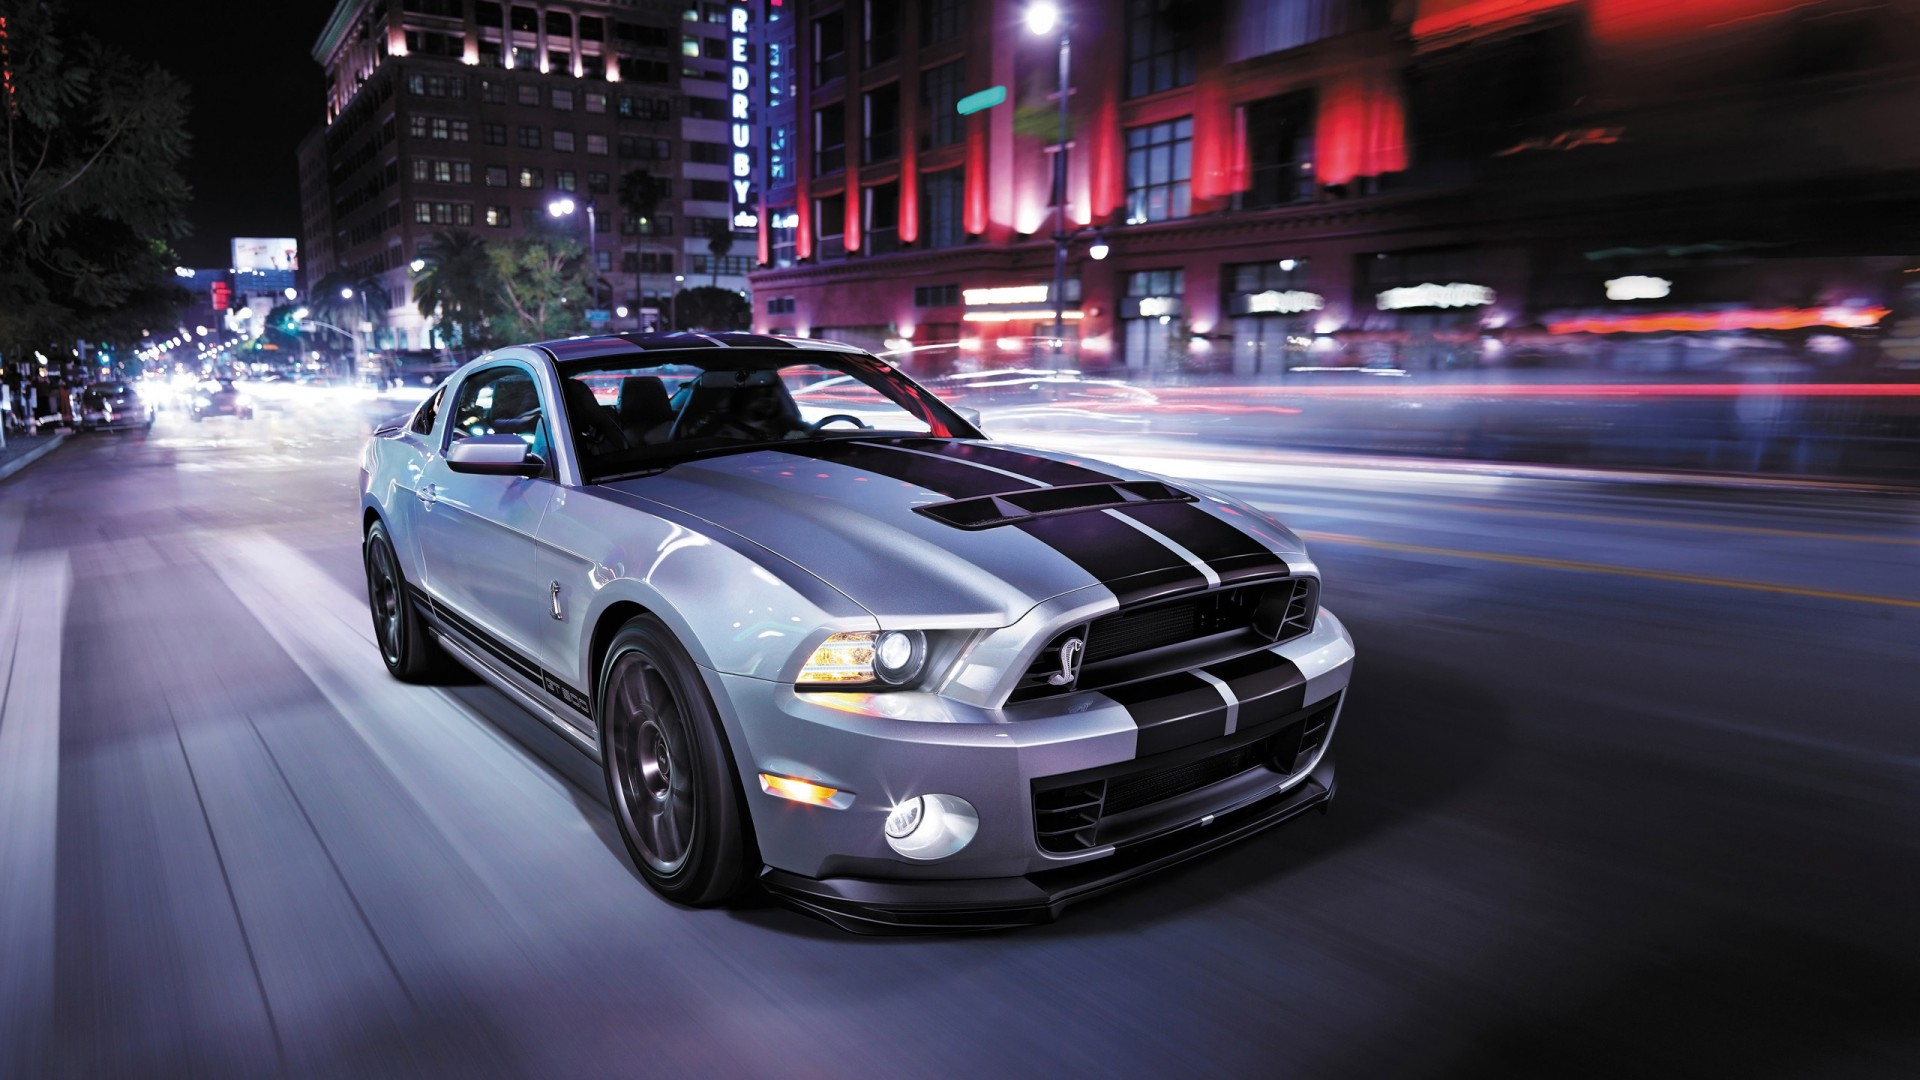 2014 Hd Wallpapers: Ford Shelby GT500 2014 Wallpaper